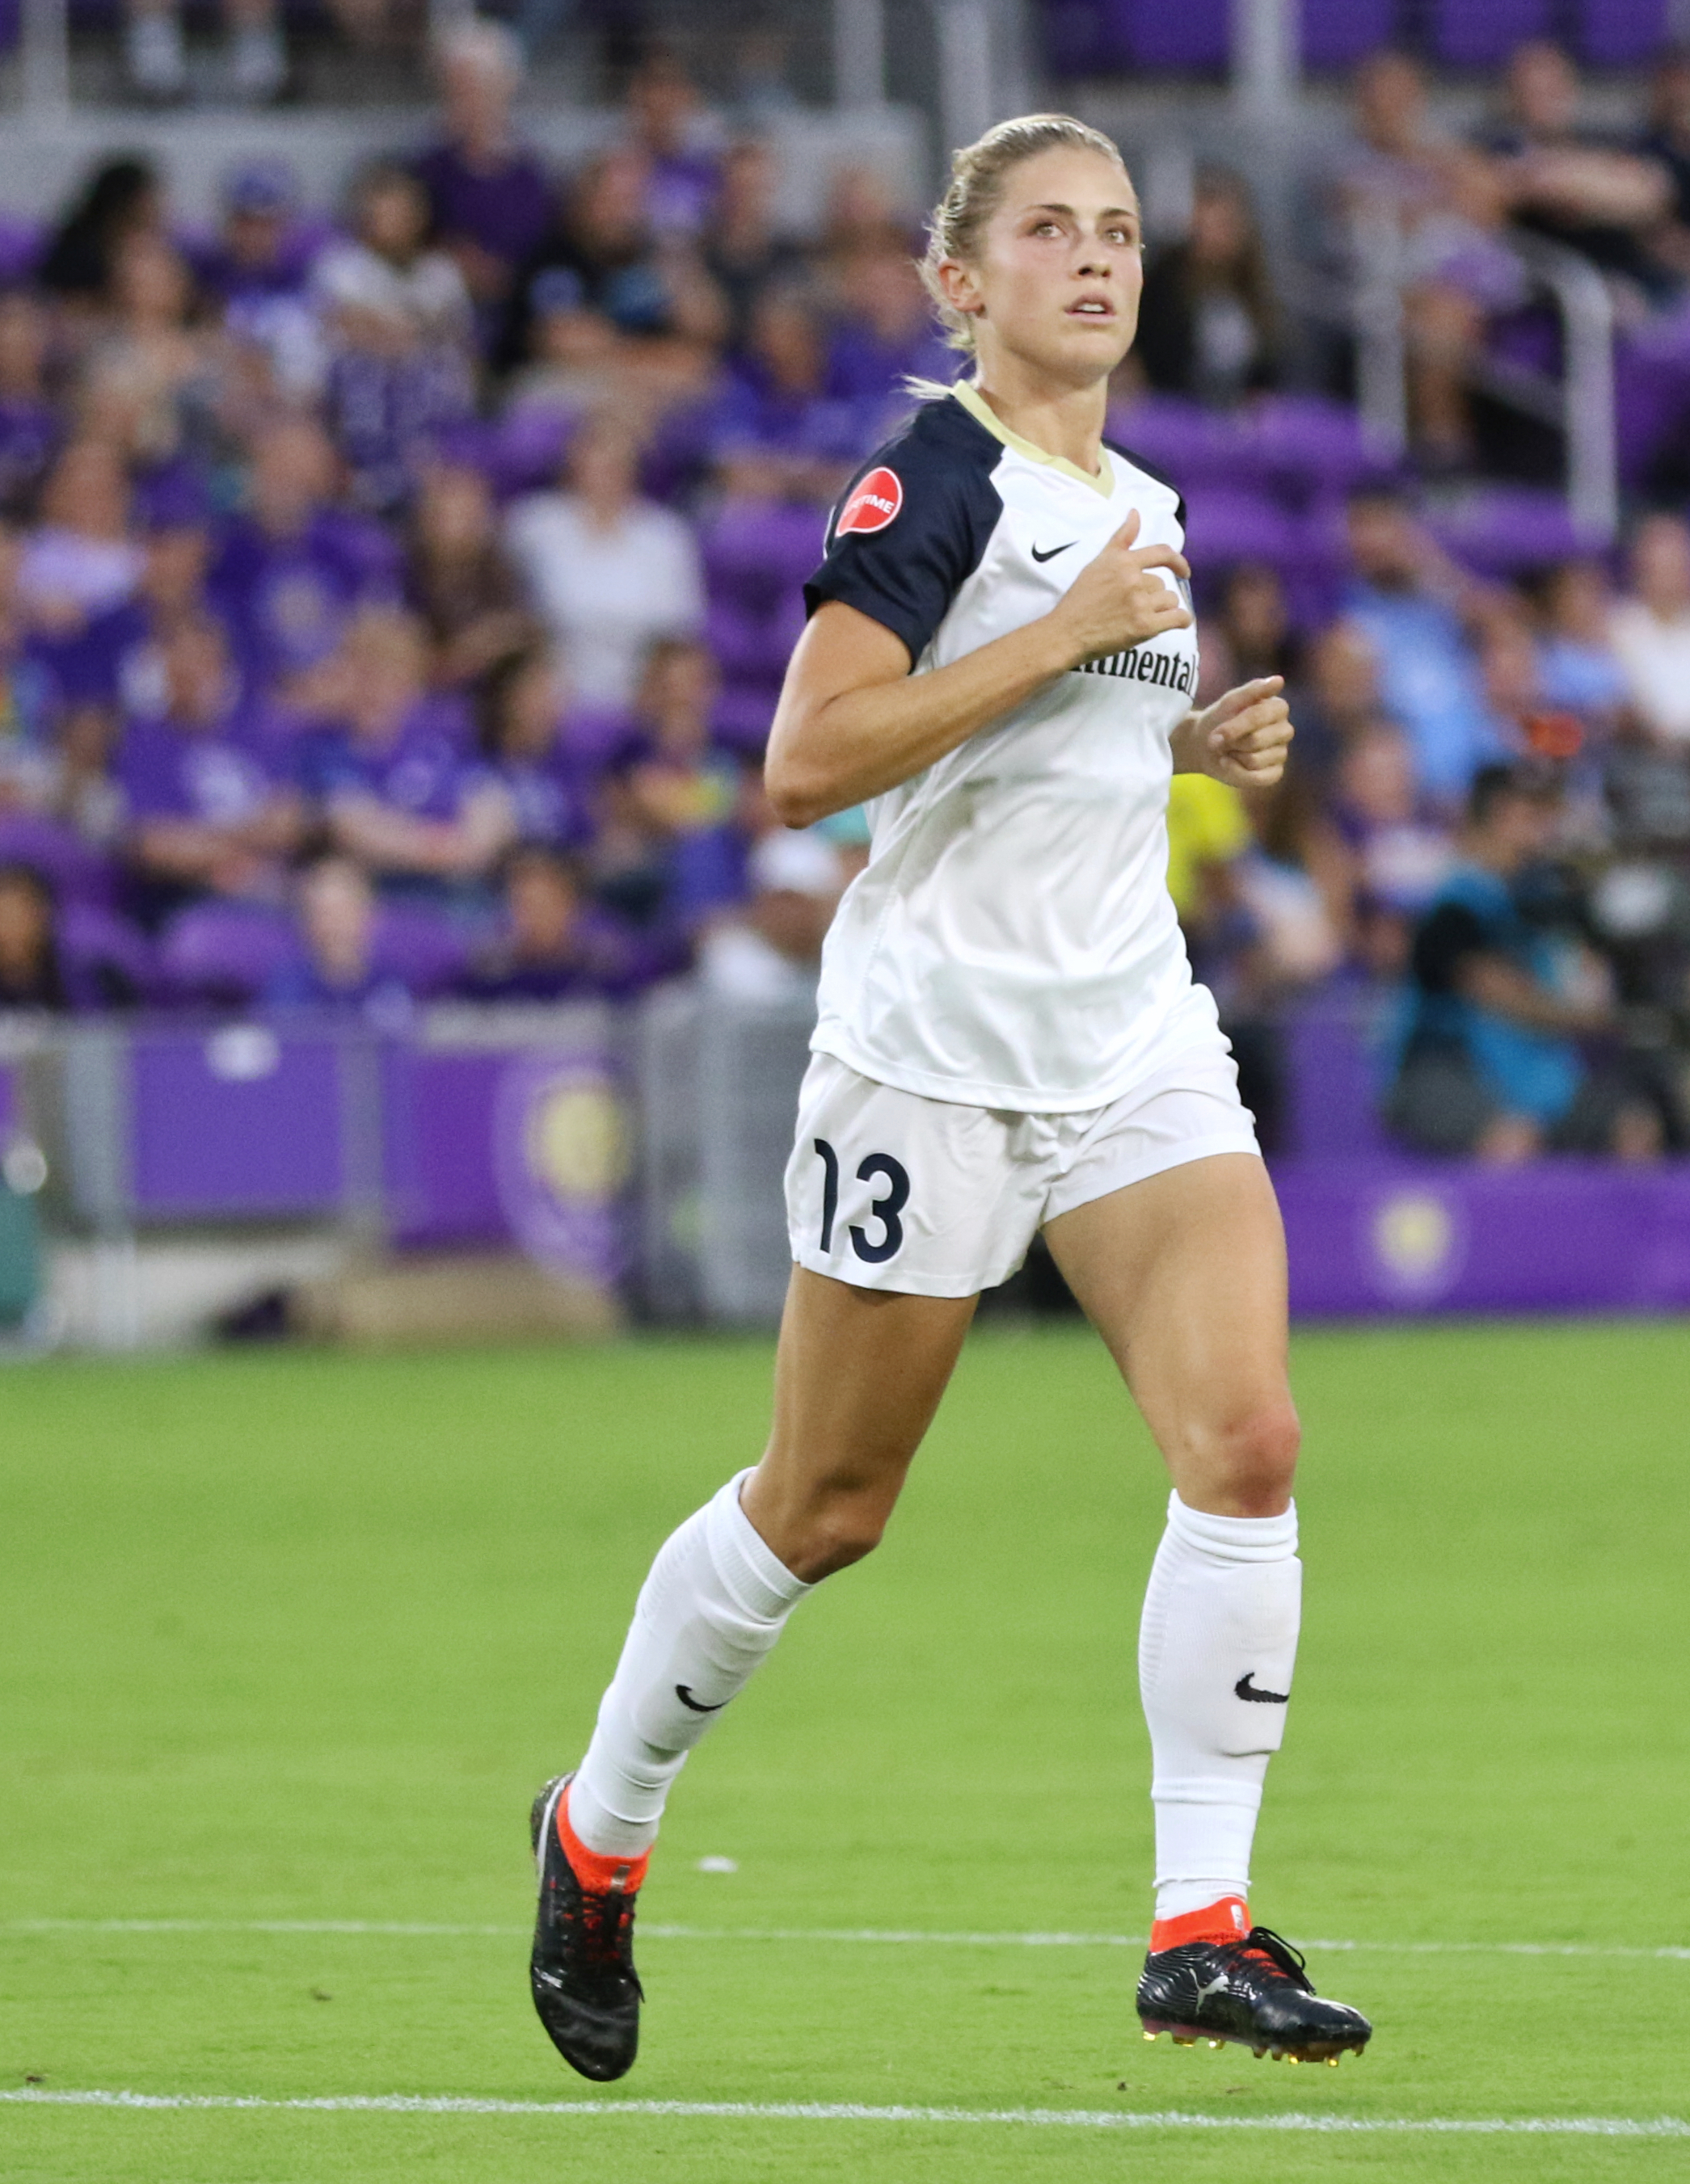 File:Abby Dahlkemper (42853109544) jpg - Wikimedia Commons